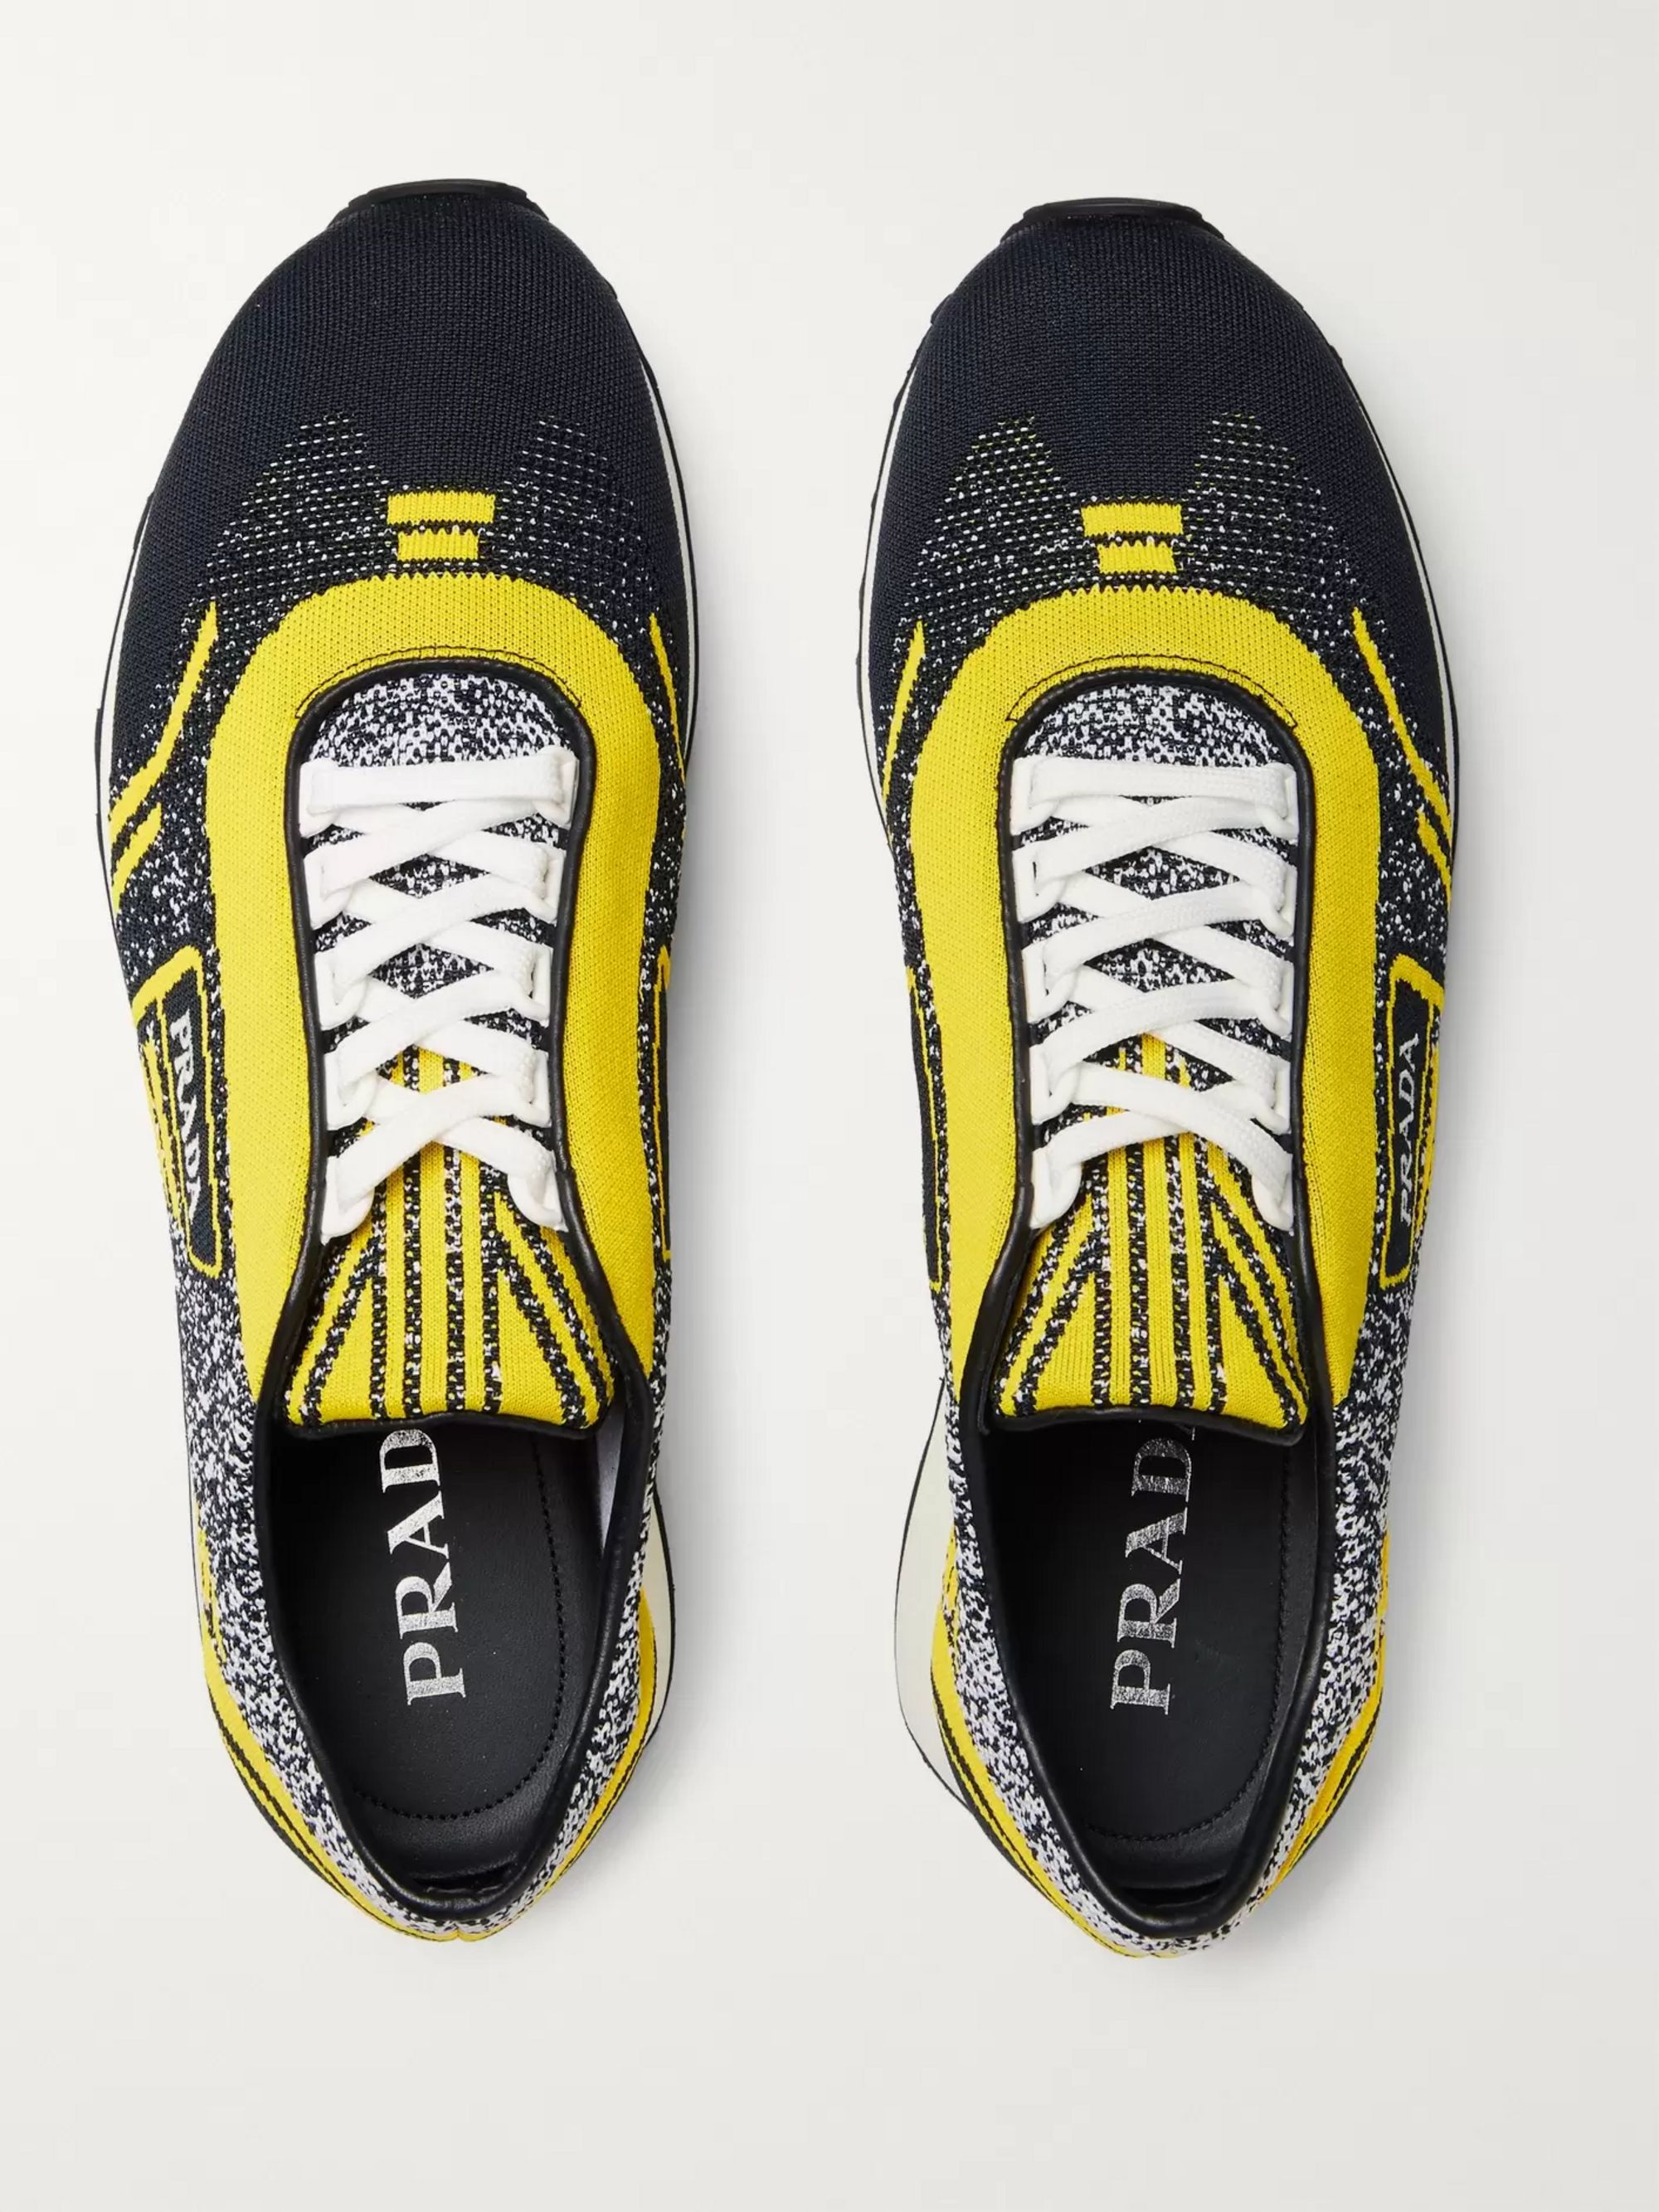 Prada Milano 70 Stretch-Knit Sneakers